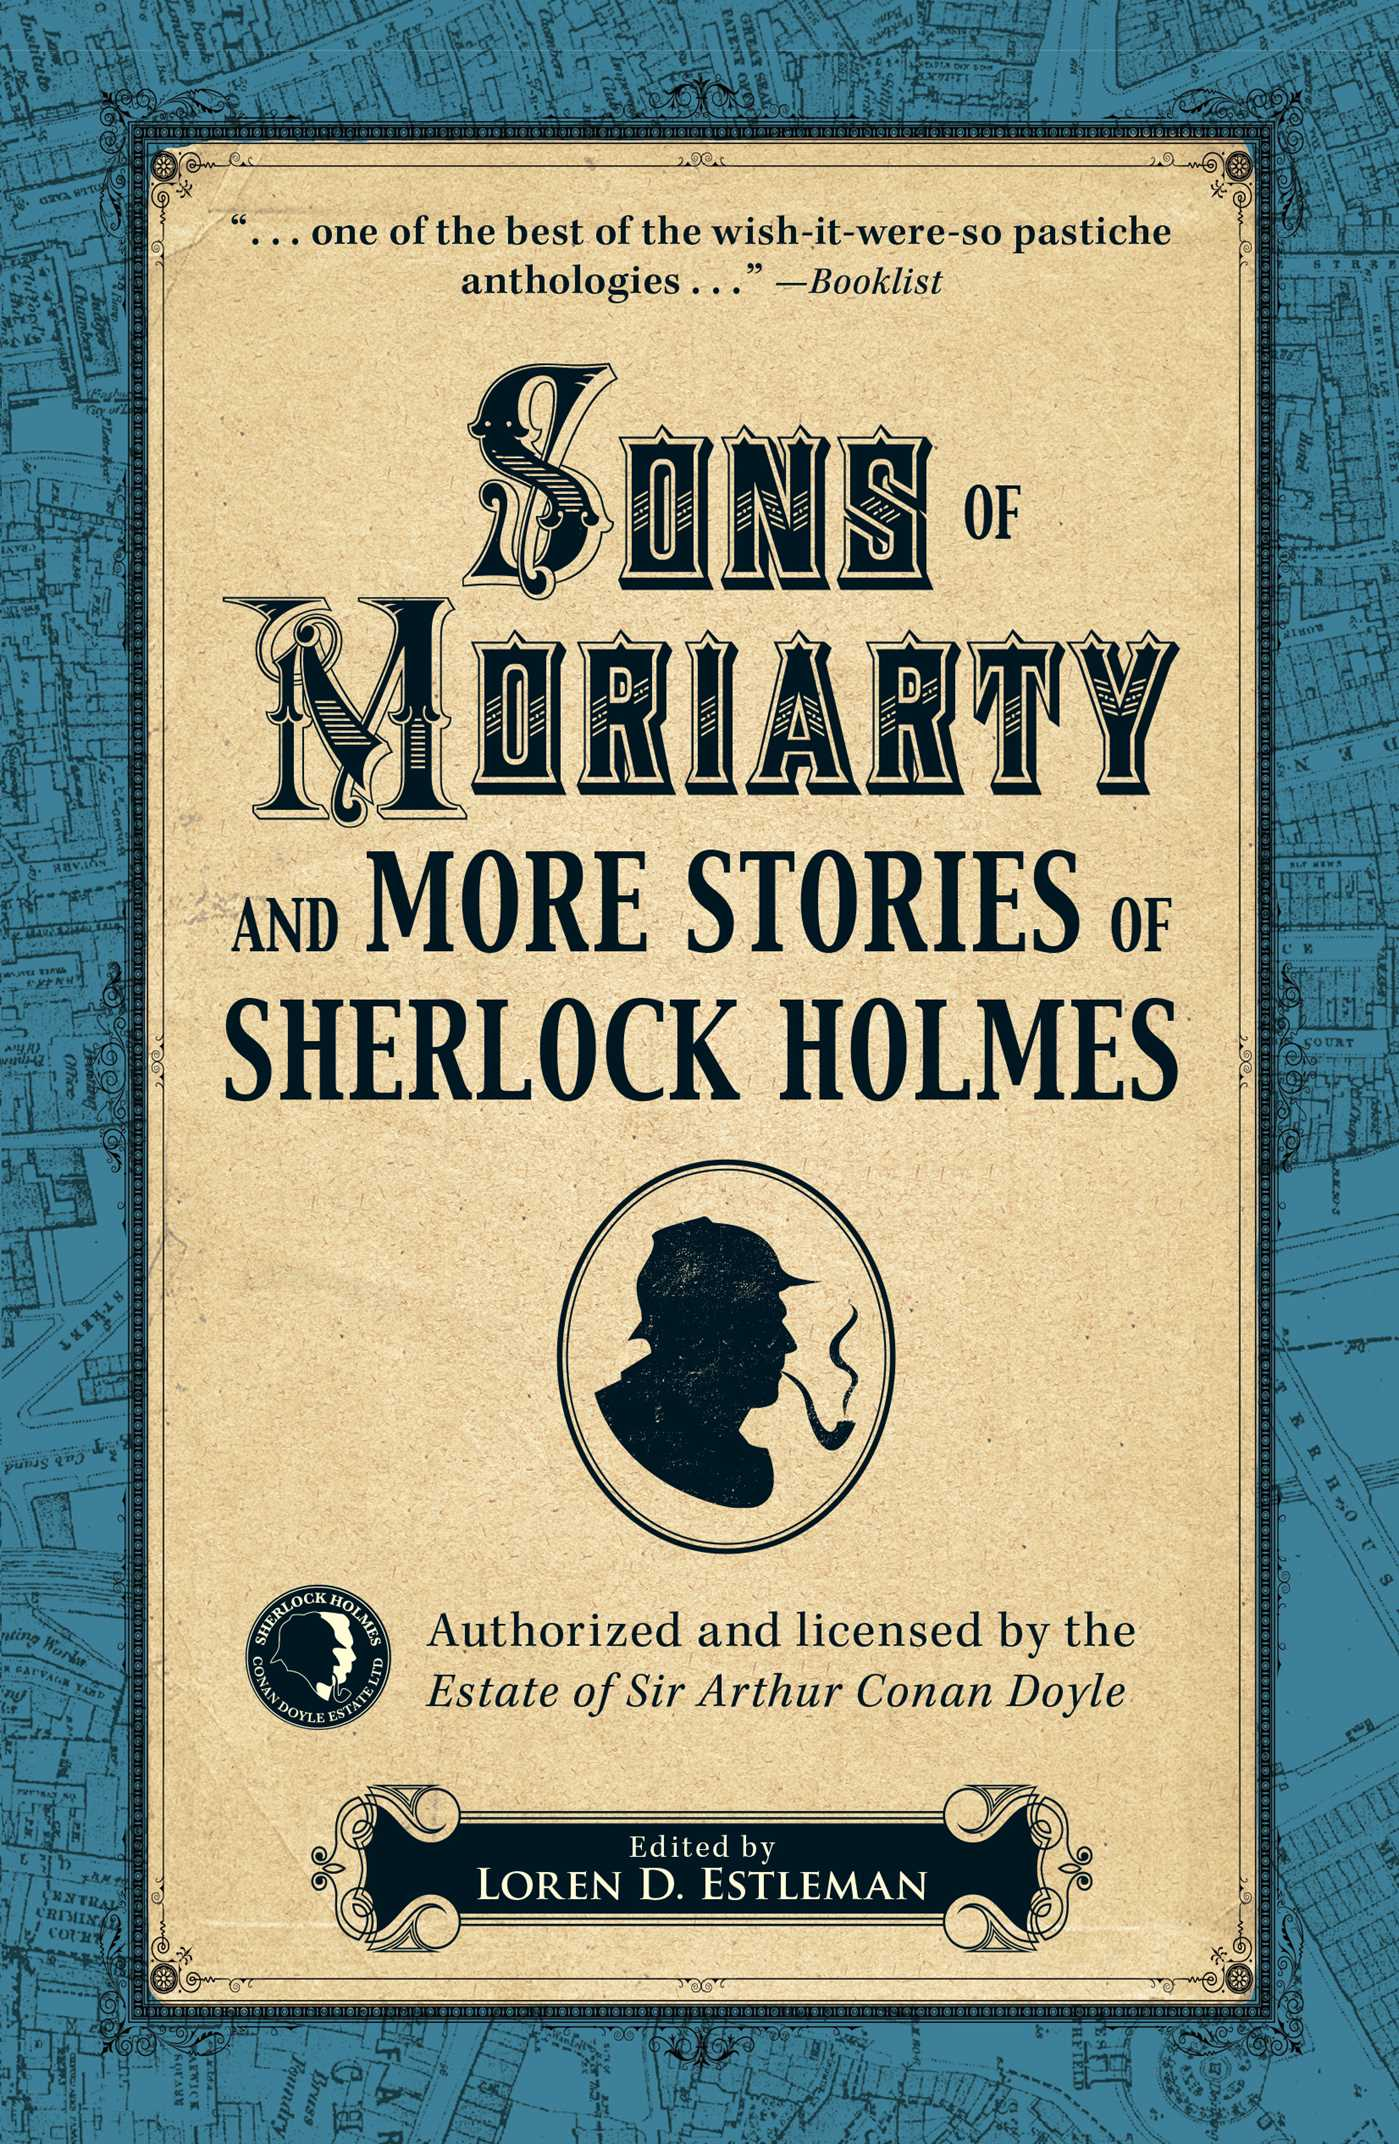 essays on sherlock holmes stories 2018-6-2  the stories of sherlock holmes essayssherlock holmes stories were written by sir arthur conan doyle, who was born in edinburgh on 22nd may 1859 and died in 1930 the stories of sherlock holmes are well known stories today, as they were in.